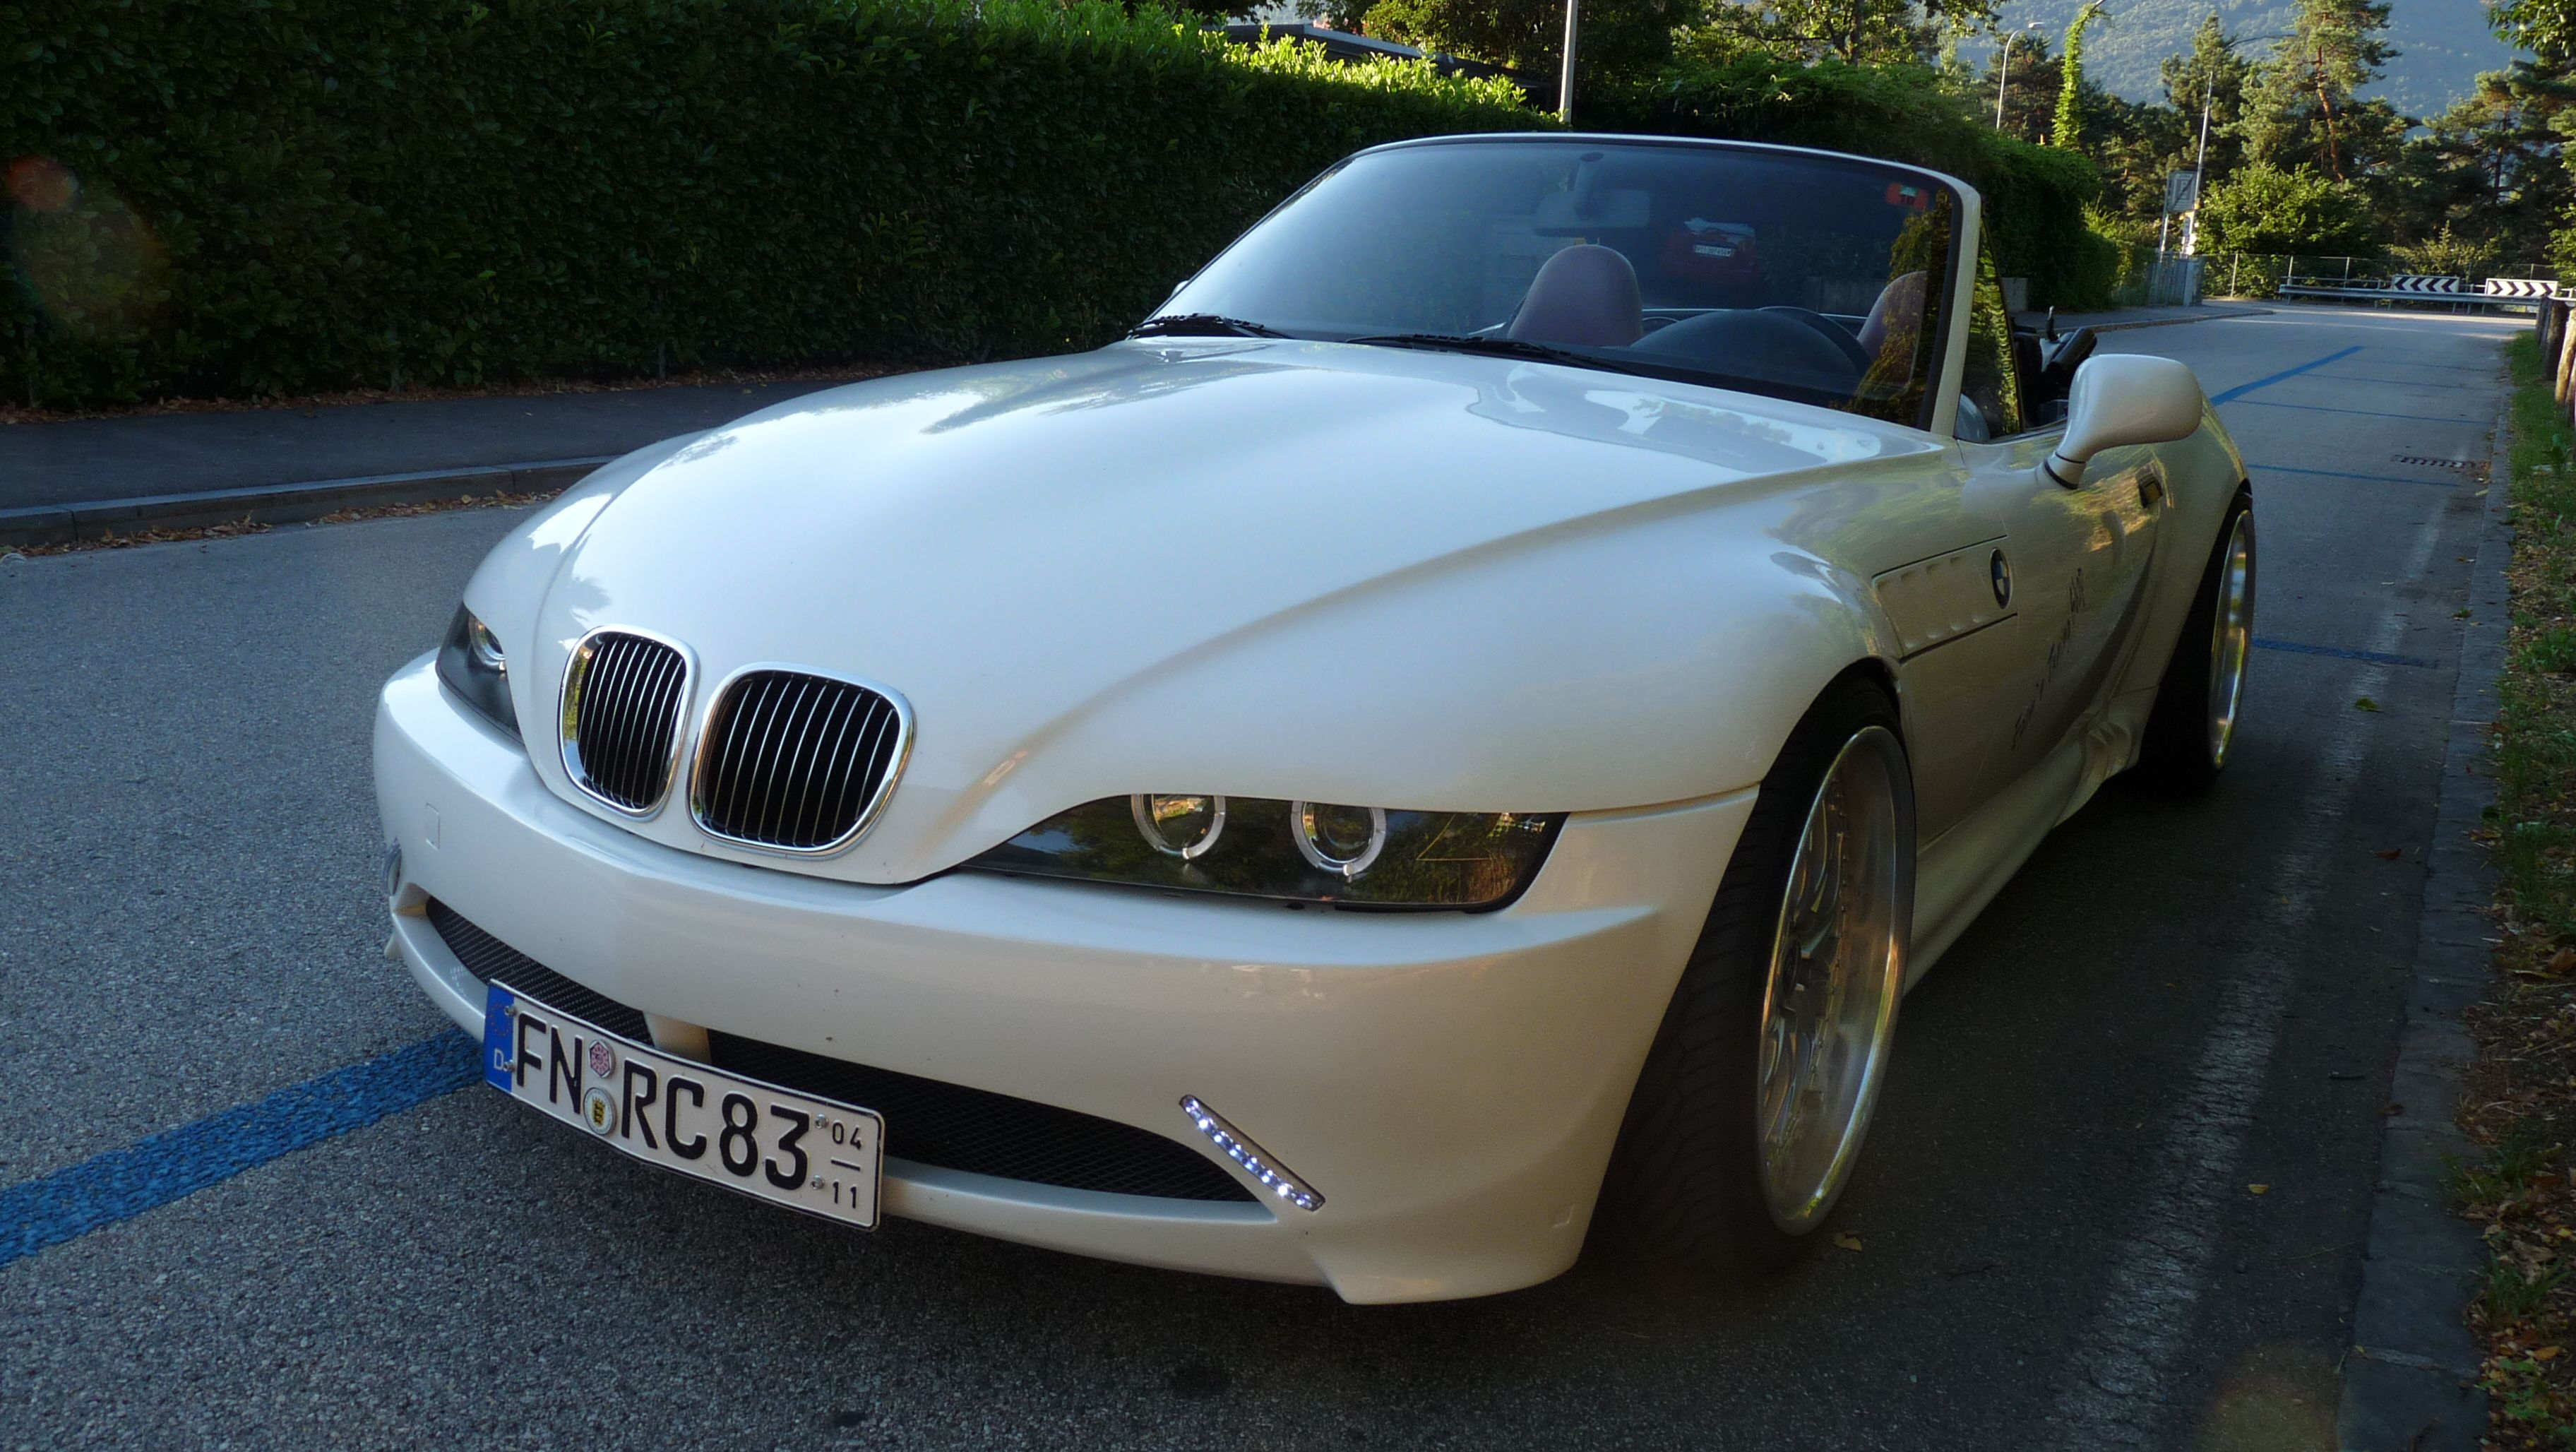 z3 white pearl bmw z1 z3 z4 z8 dream cars pinterest bmw z1 bmw and dream cars. Black Bedroom Furniture Sets. Home Design Ideas